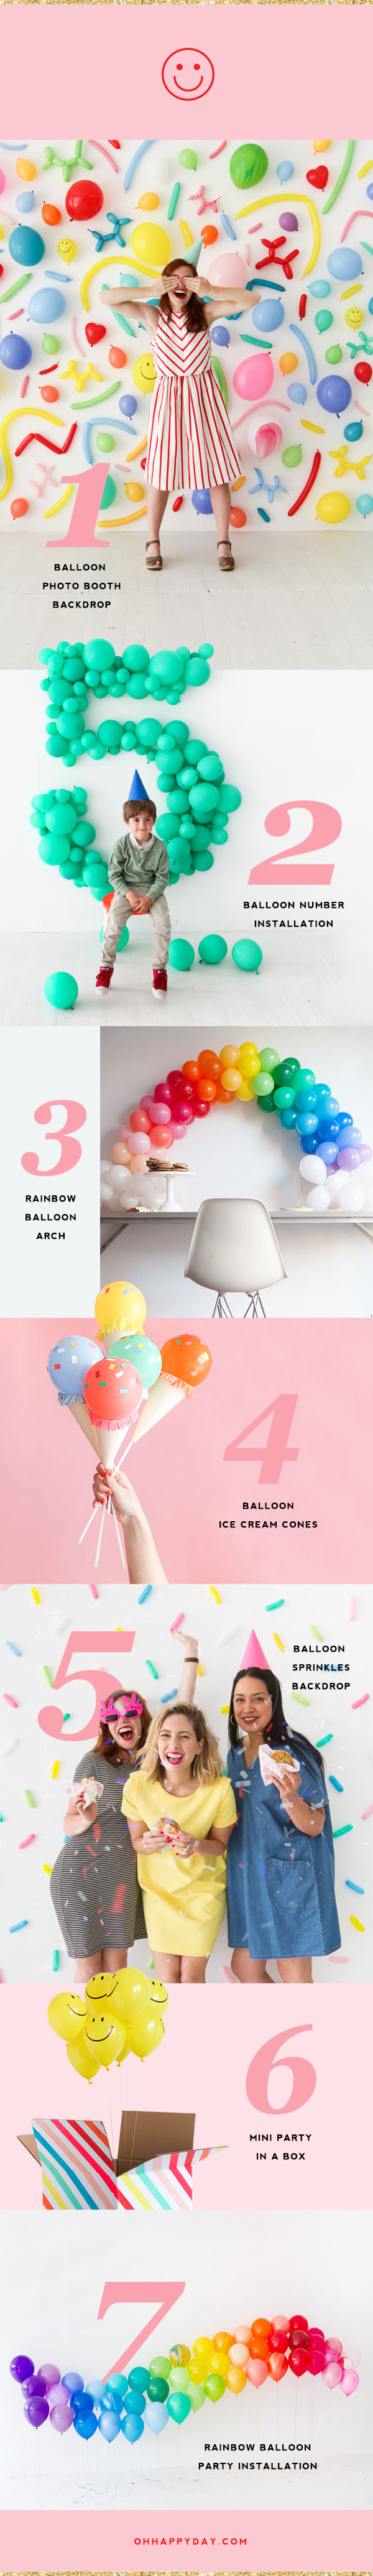 7 Awesome Balloon Projects | Oh Happy Day!